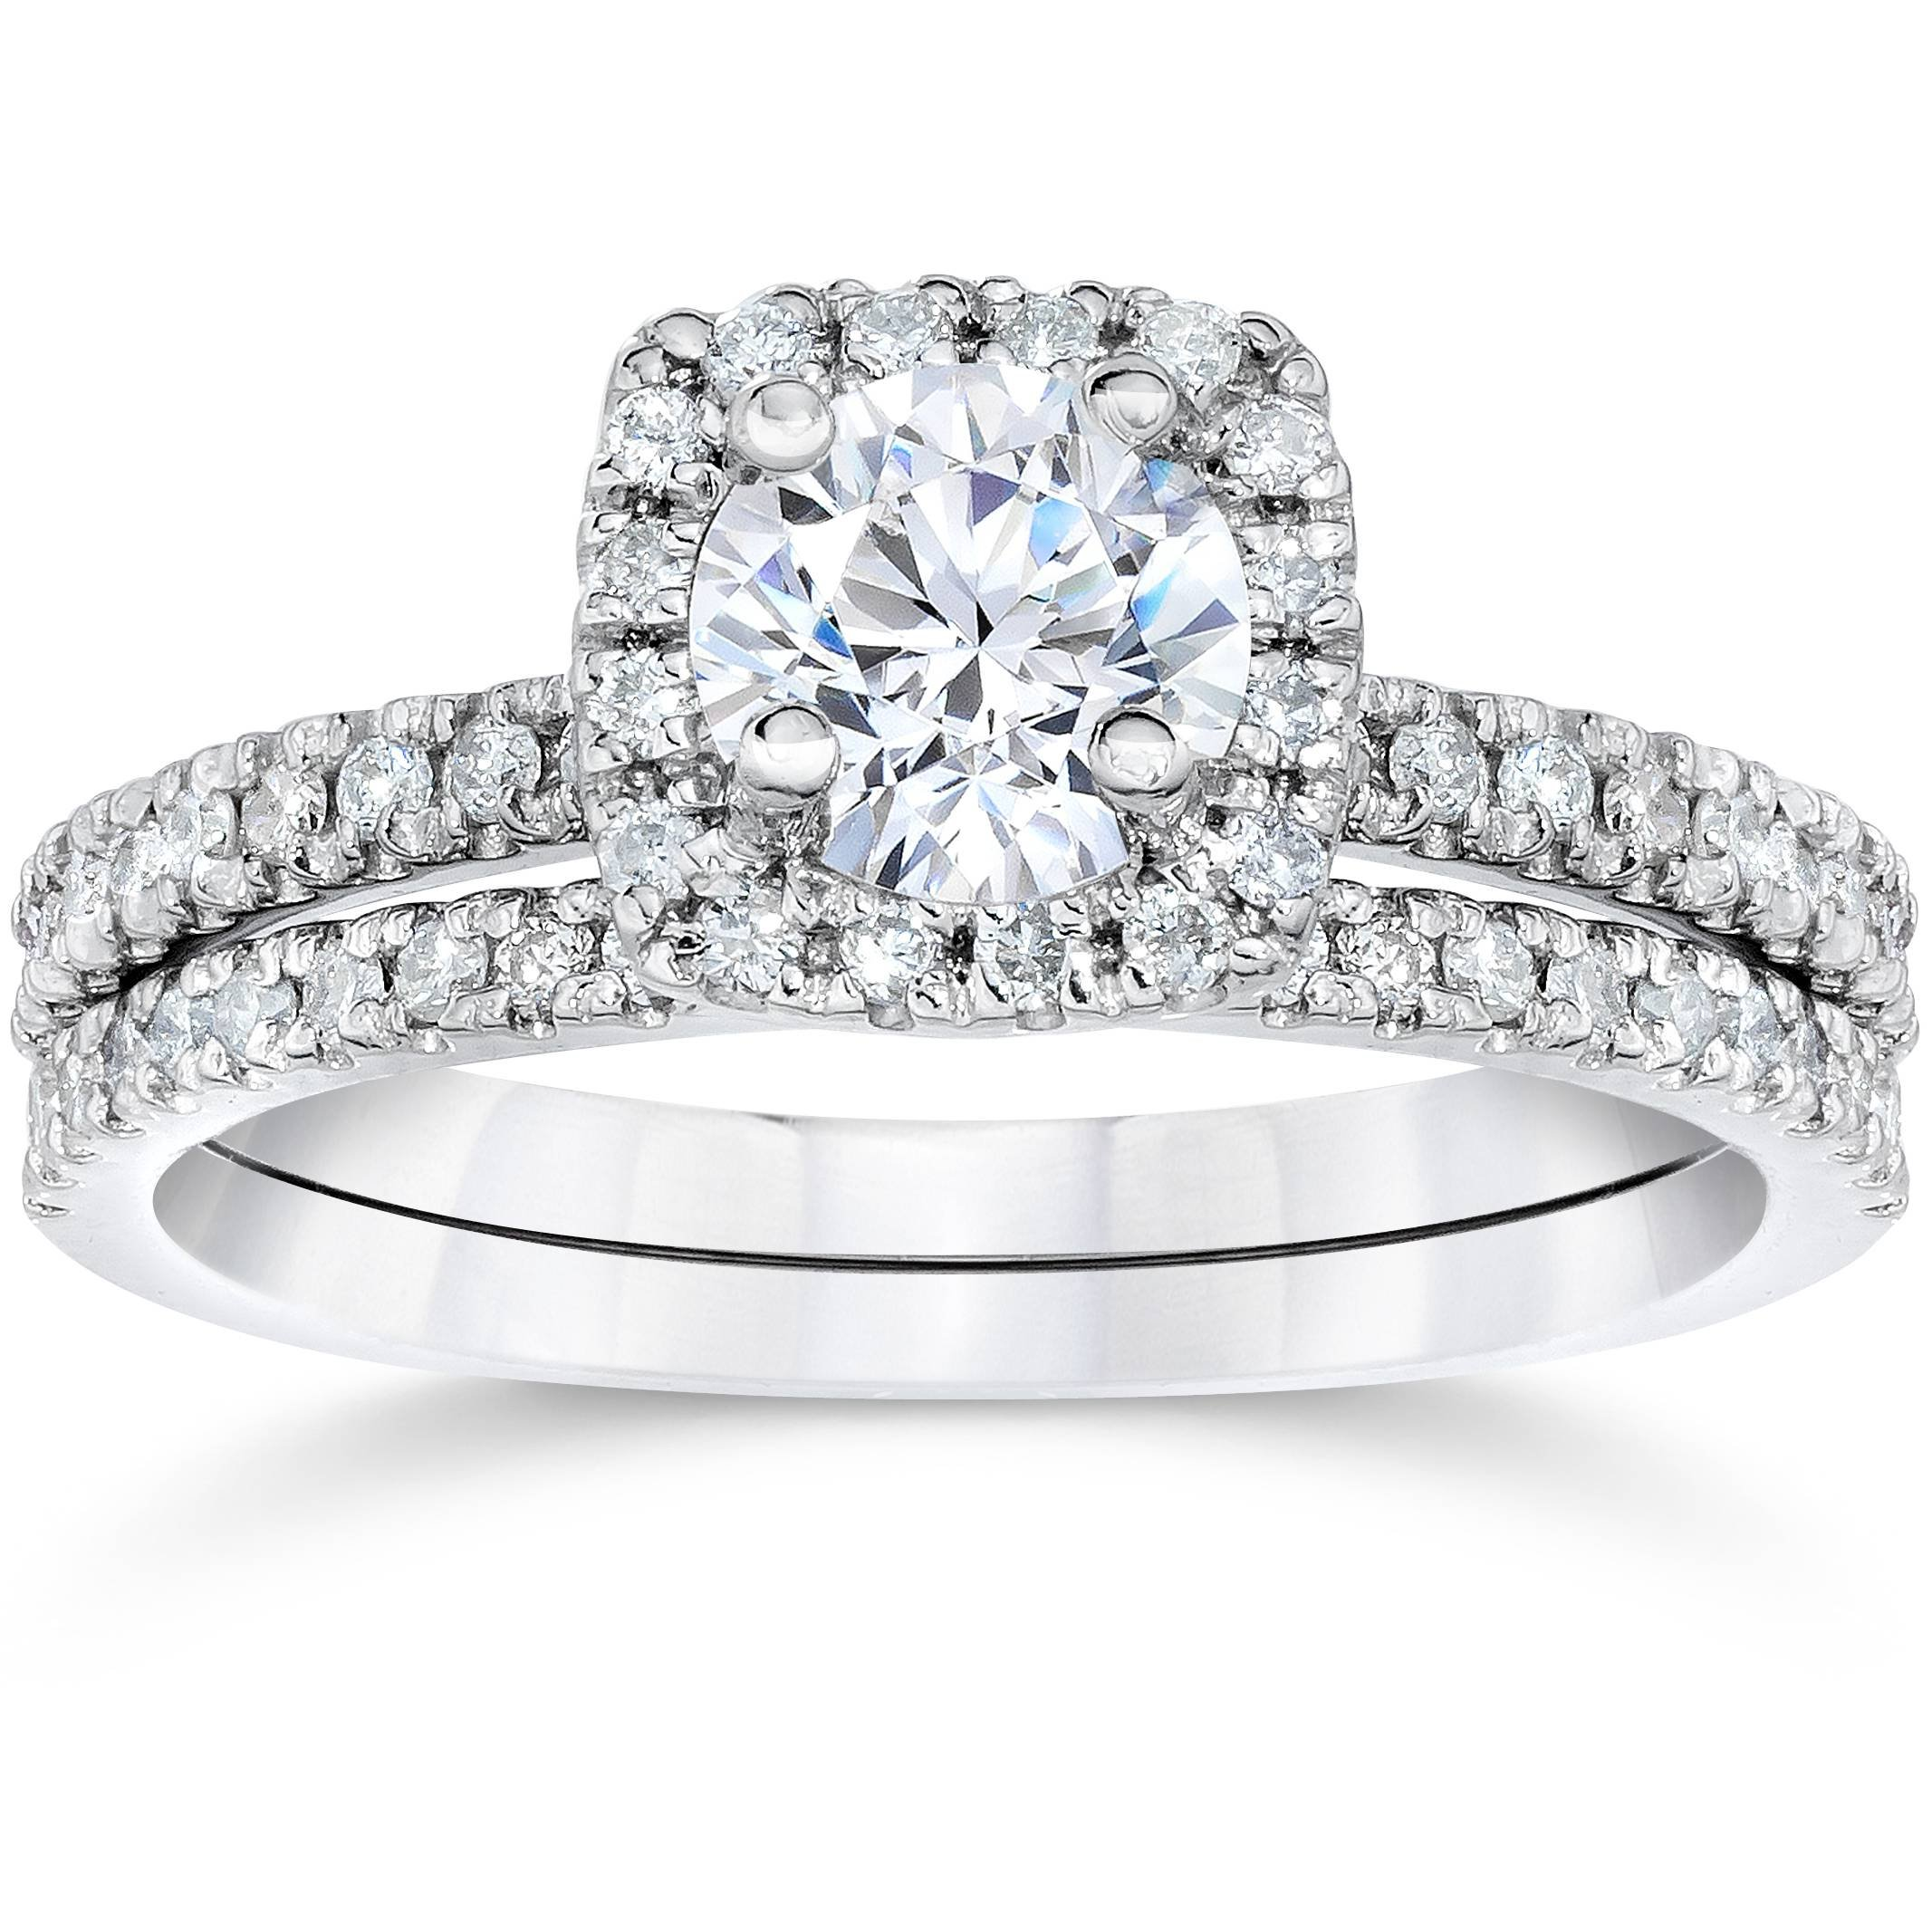 5/8 Carat Cushion Halo Diamond Engagement Wedding Ring Set White Gold - Size 6.5